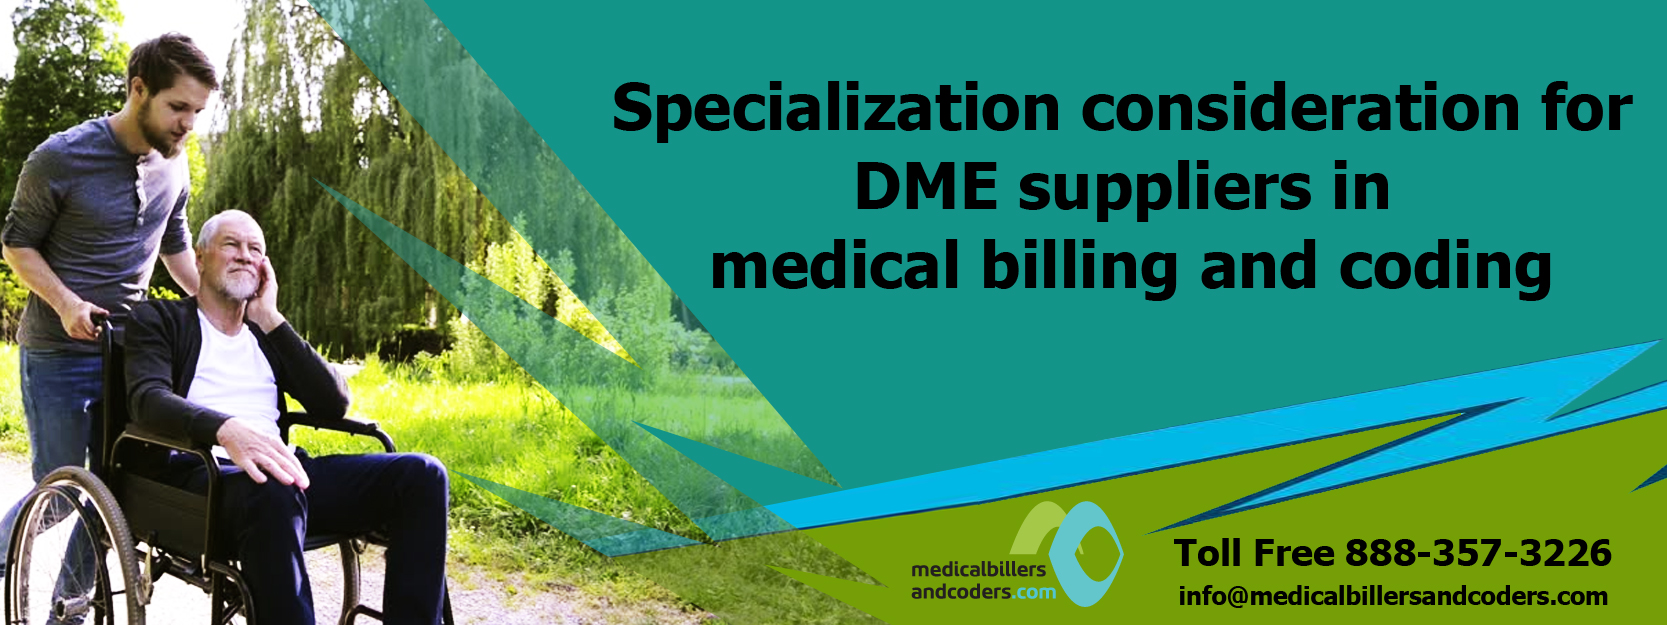 Specialization consideration for DME suppliers in medical billing and coding